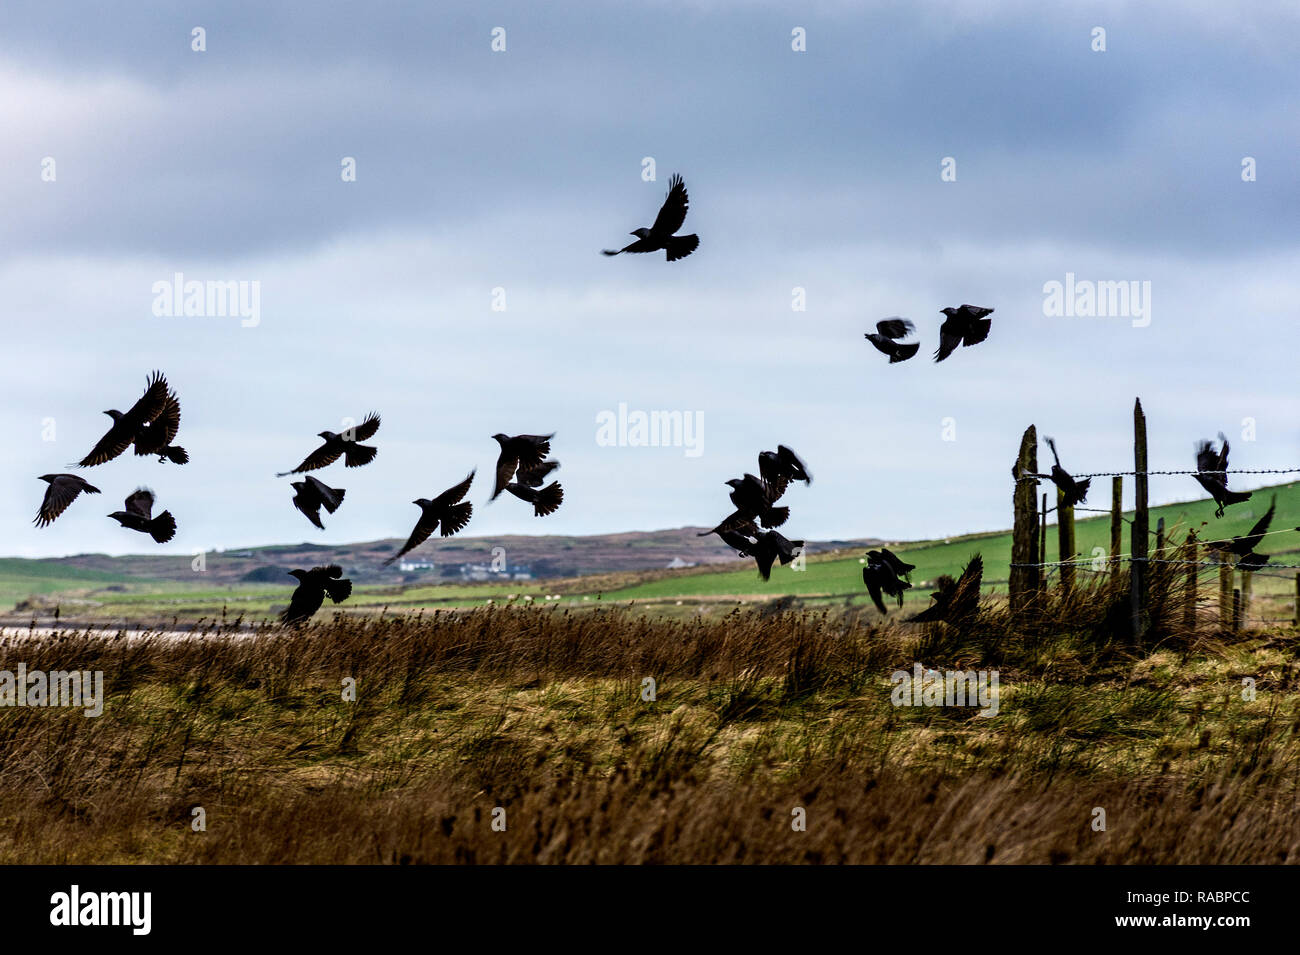 Ardara, County Donegal, Ireland. 3rd January 2019. An unkindness (group name for ravens) of Ravens, Corvus corax, takes to the air on the north-west coast. The birds are common in Ireland and often gather in groups before breeding in spring. Credit: Richard Wayman/Alamy Live News - Stock Image